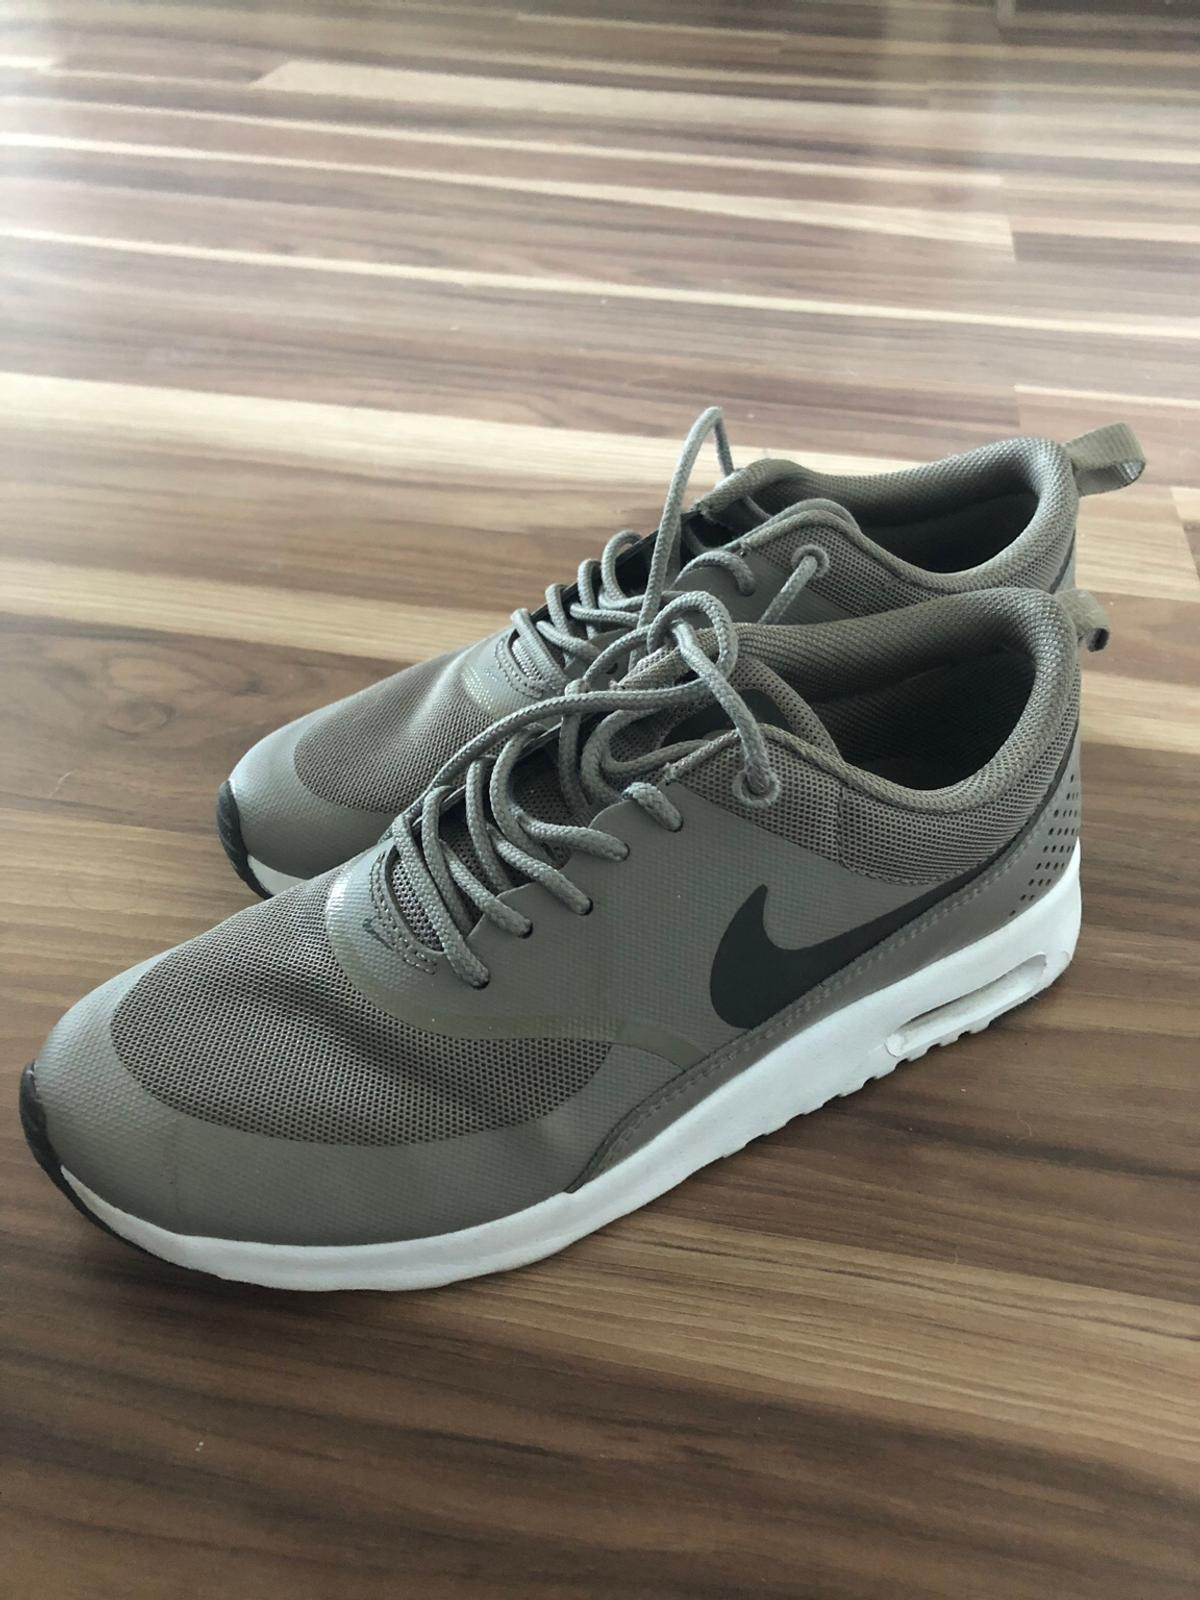 top brands sneakers designer fashion Nike Thea Damen Schuhe